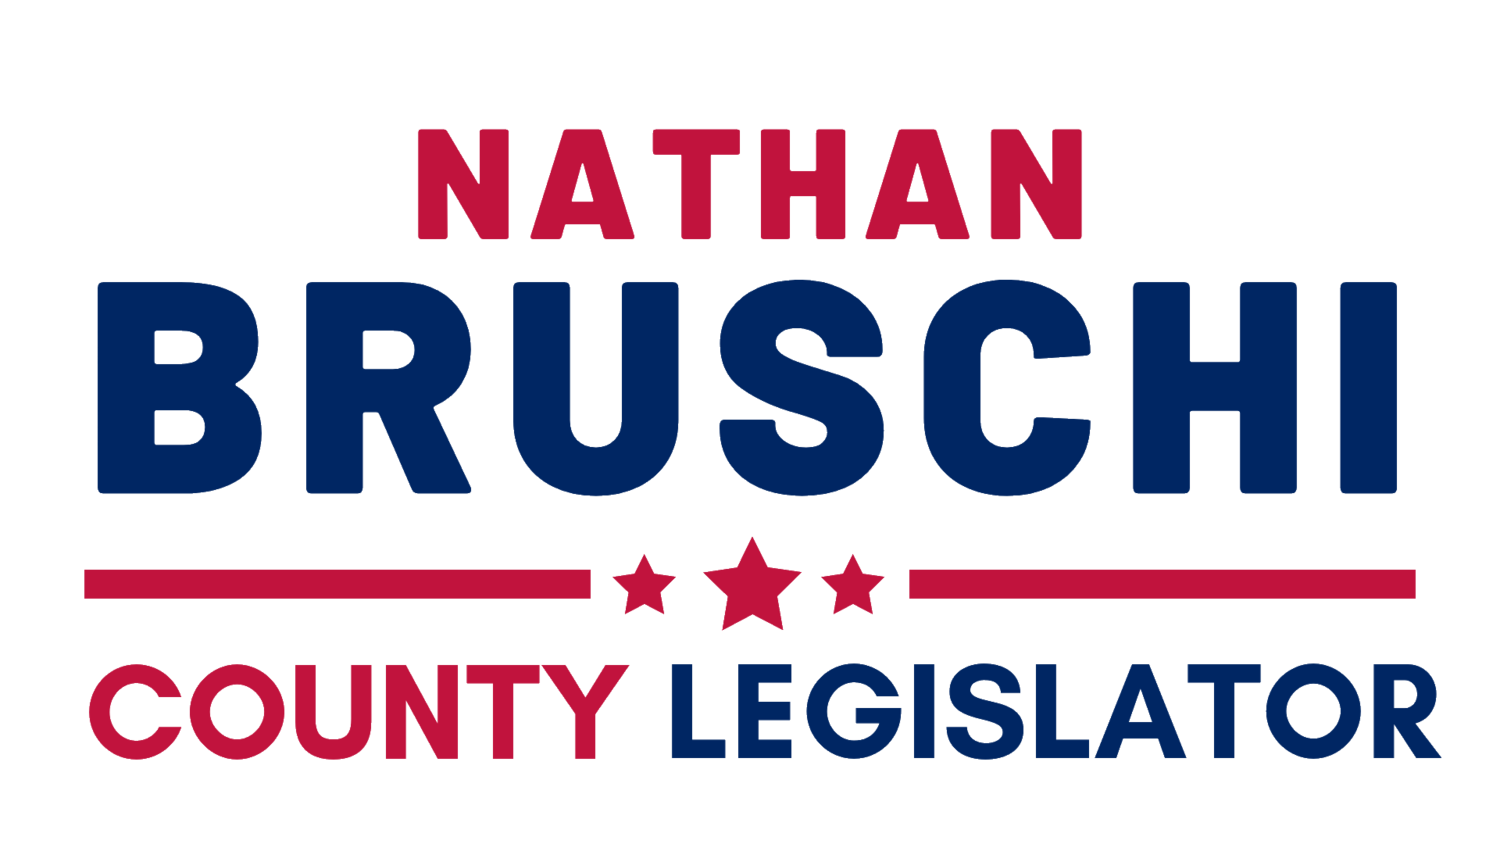 Nathan Bruschi for County Legislator